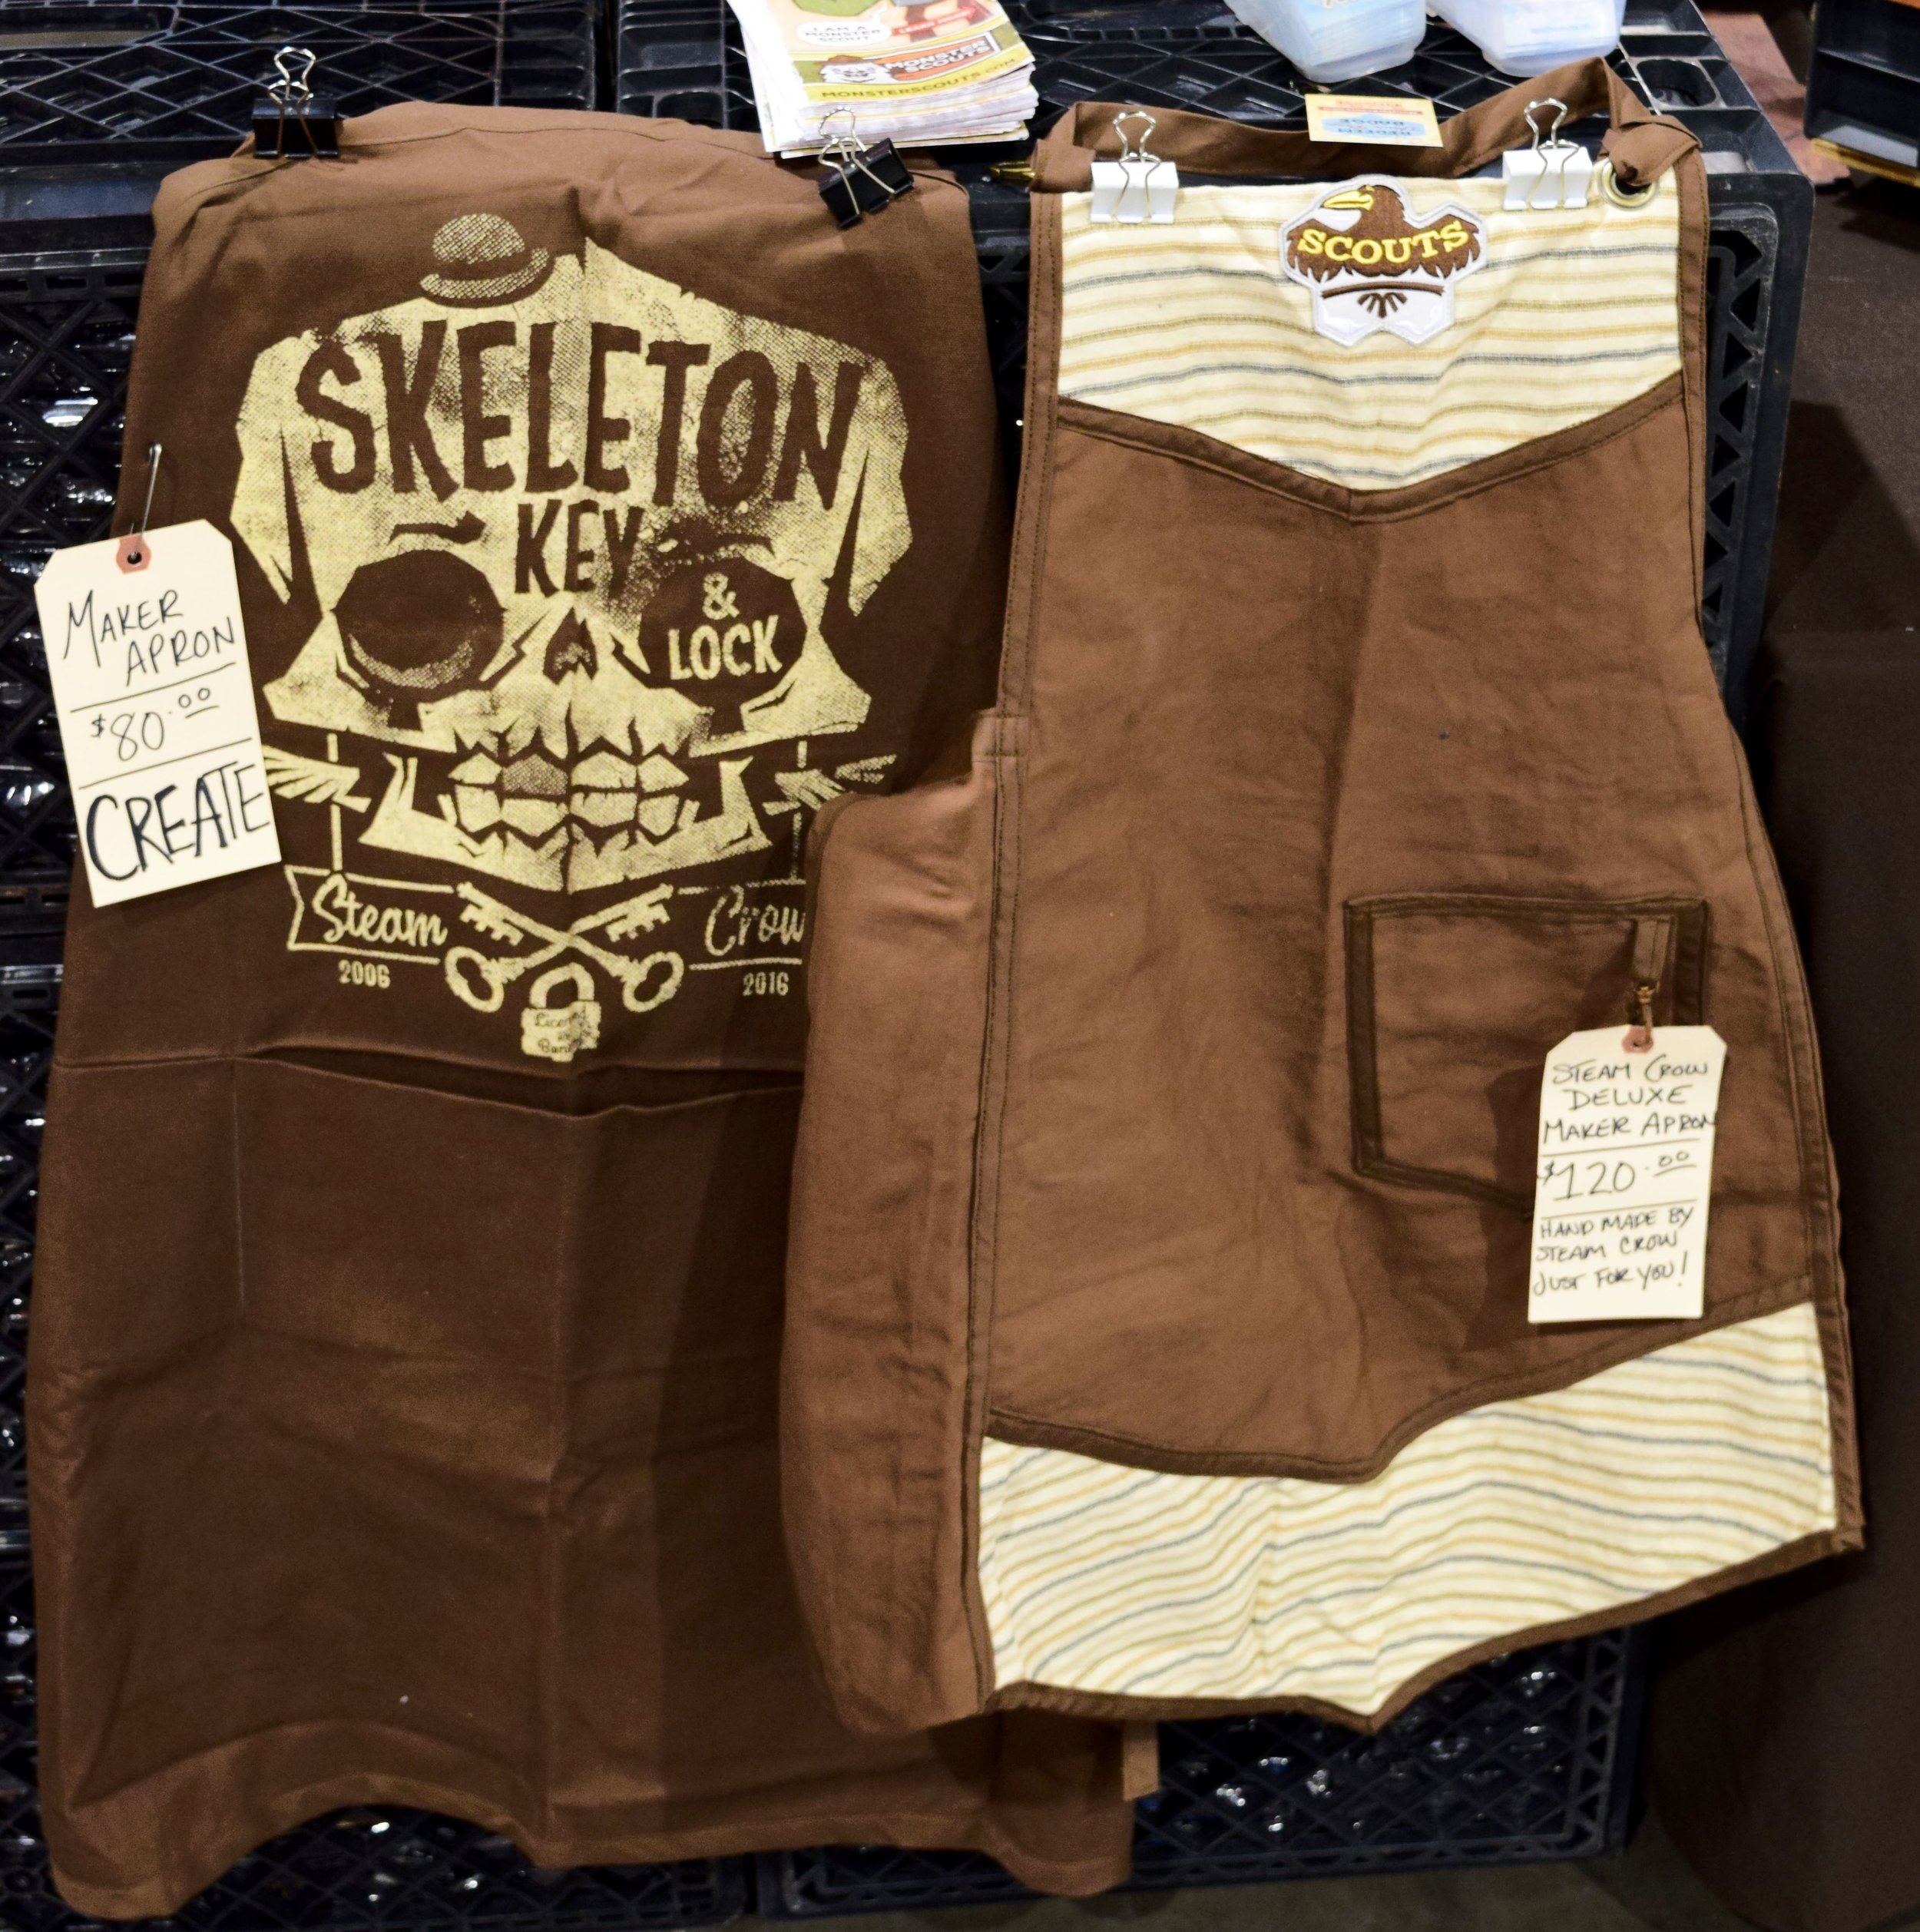 Steam Crow Maker Aprons at Phoenix Comic Con 2017.